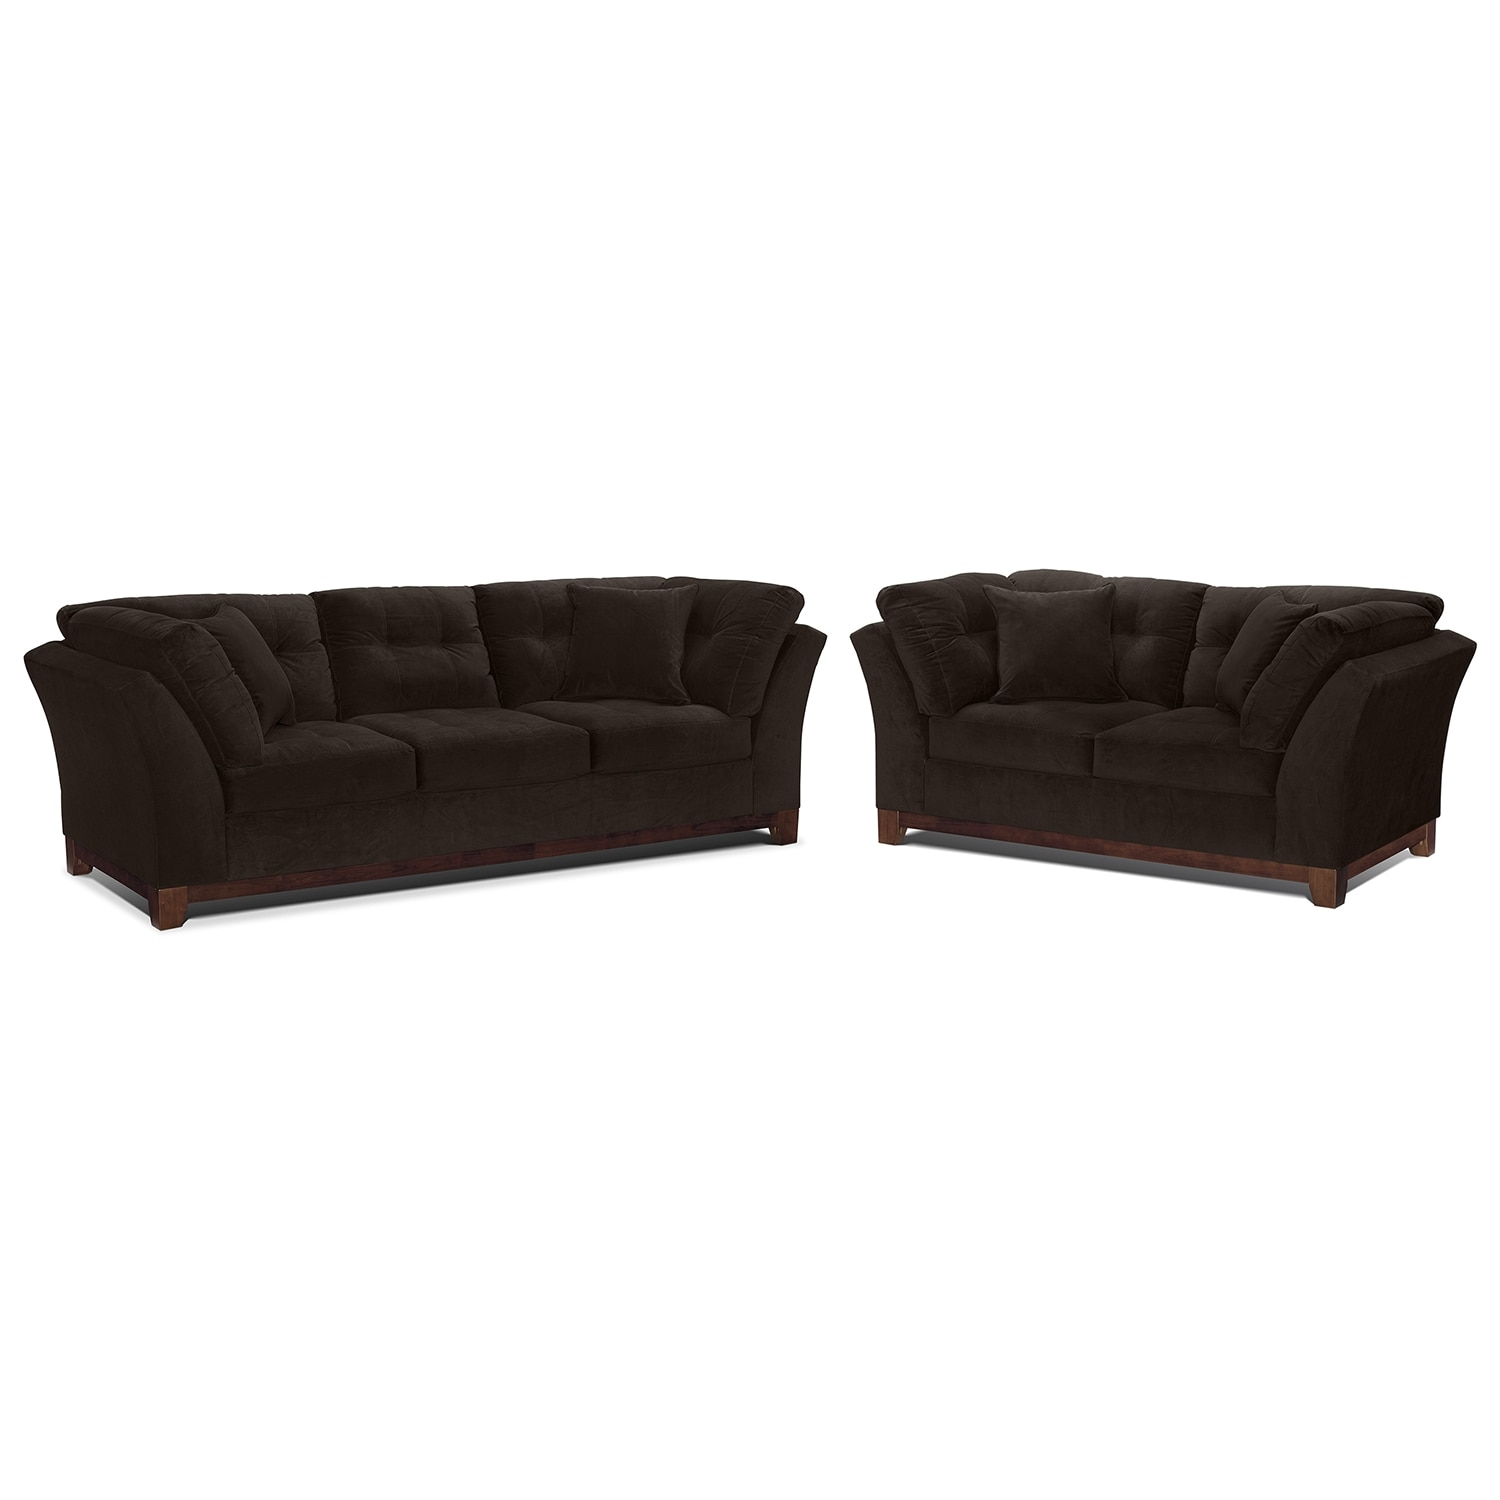 Living Room Furniture - Solace Chocolate 2 Pc. Living Room